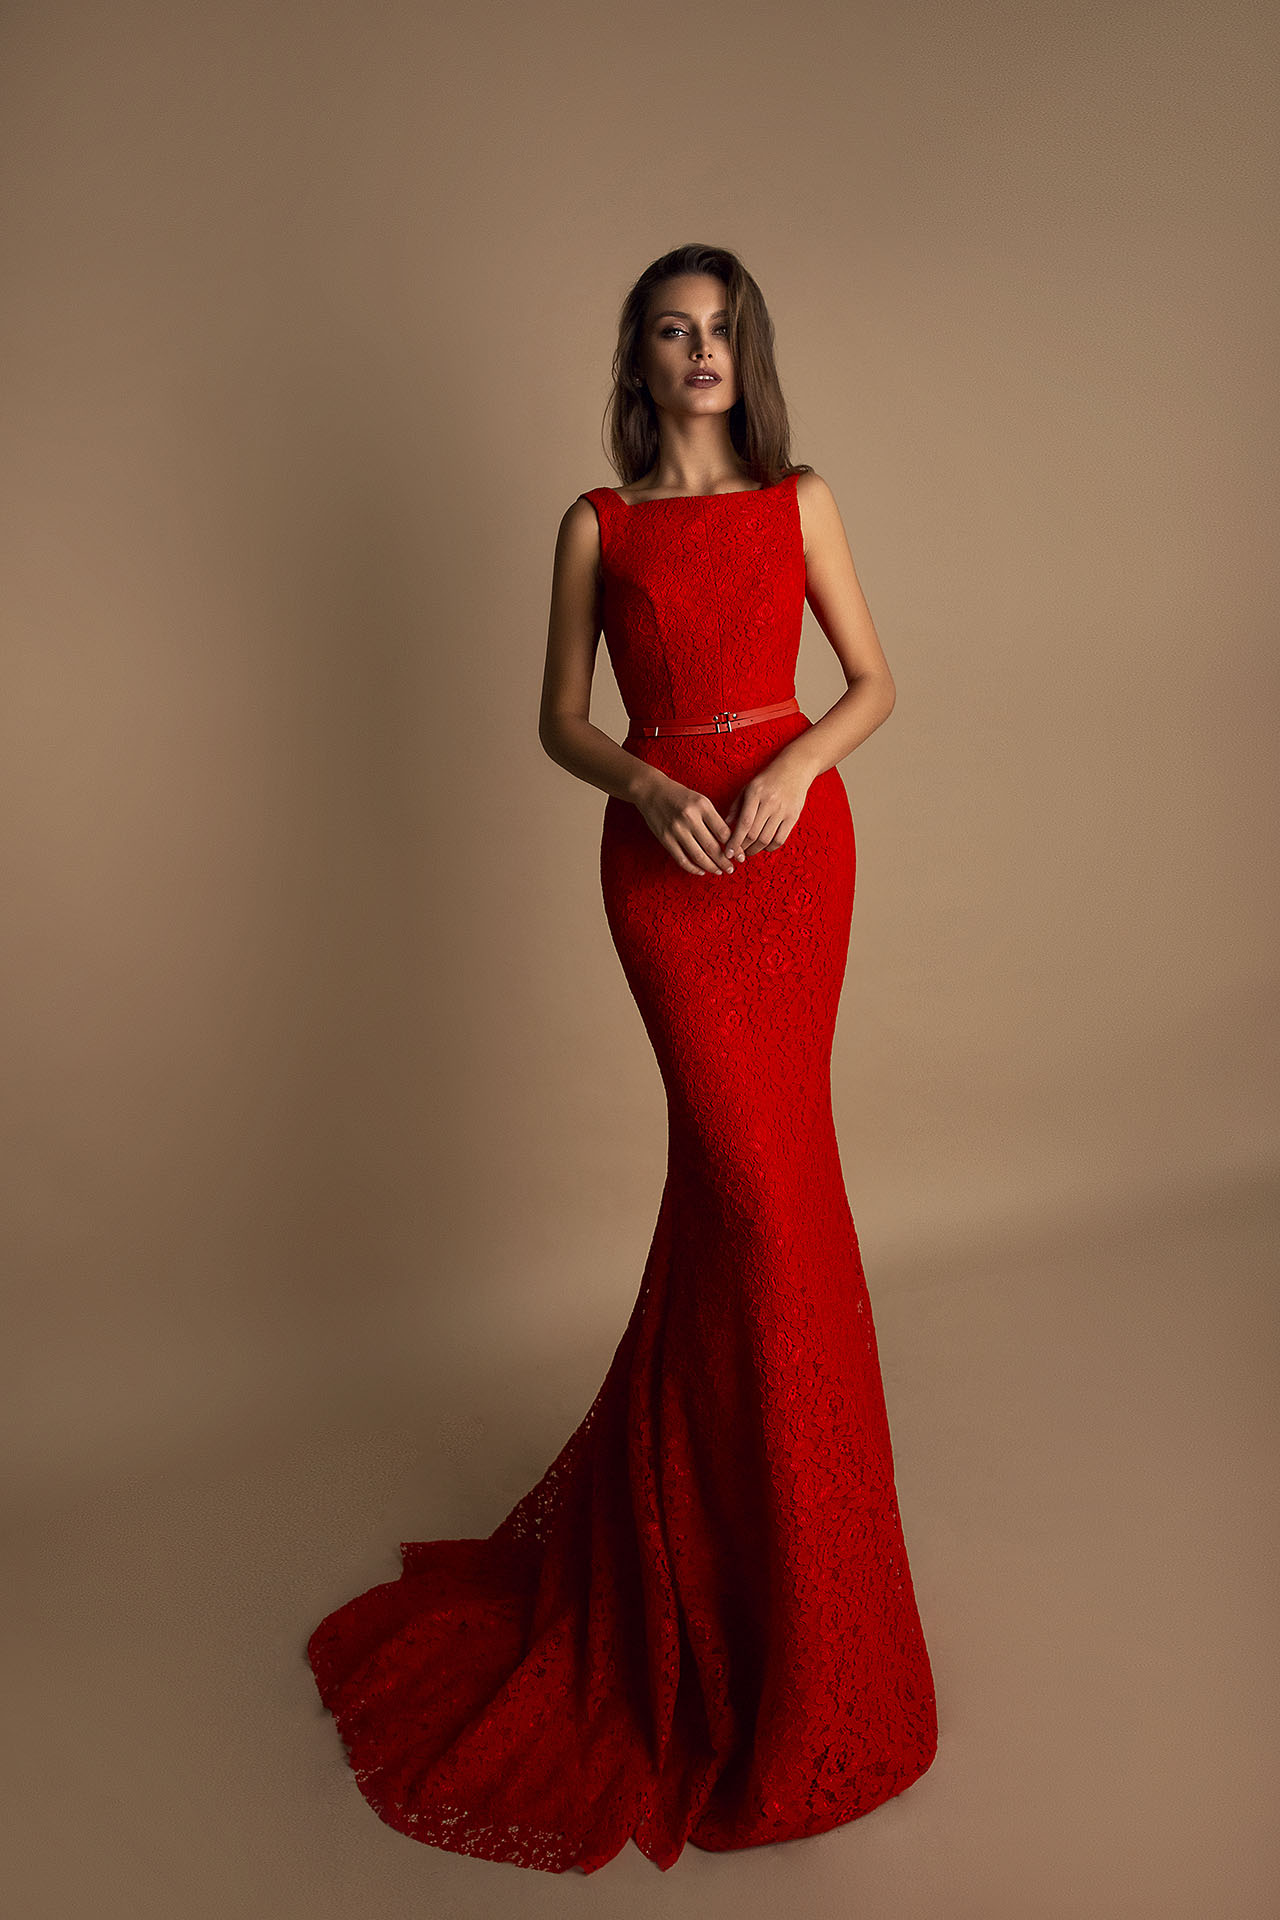 Evening Dresses 1623 Silhouette  Fitted  Color  Blue  Peach  Red  Neckline  Bateau (Boat Neck)  Sleeves  Wide straps  Train  With train